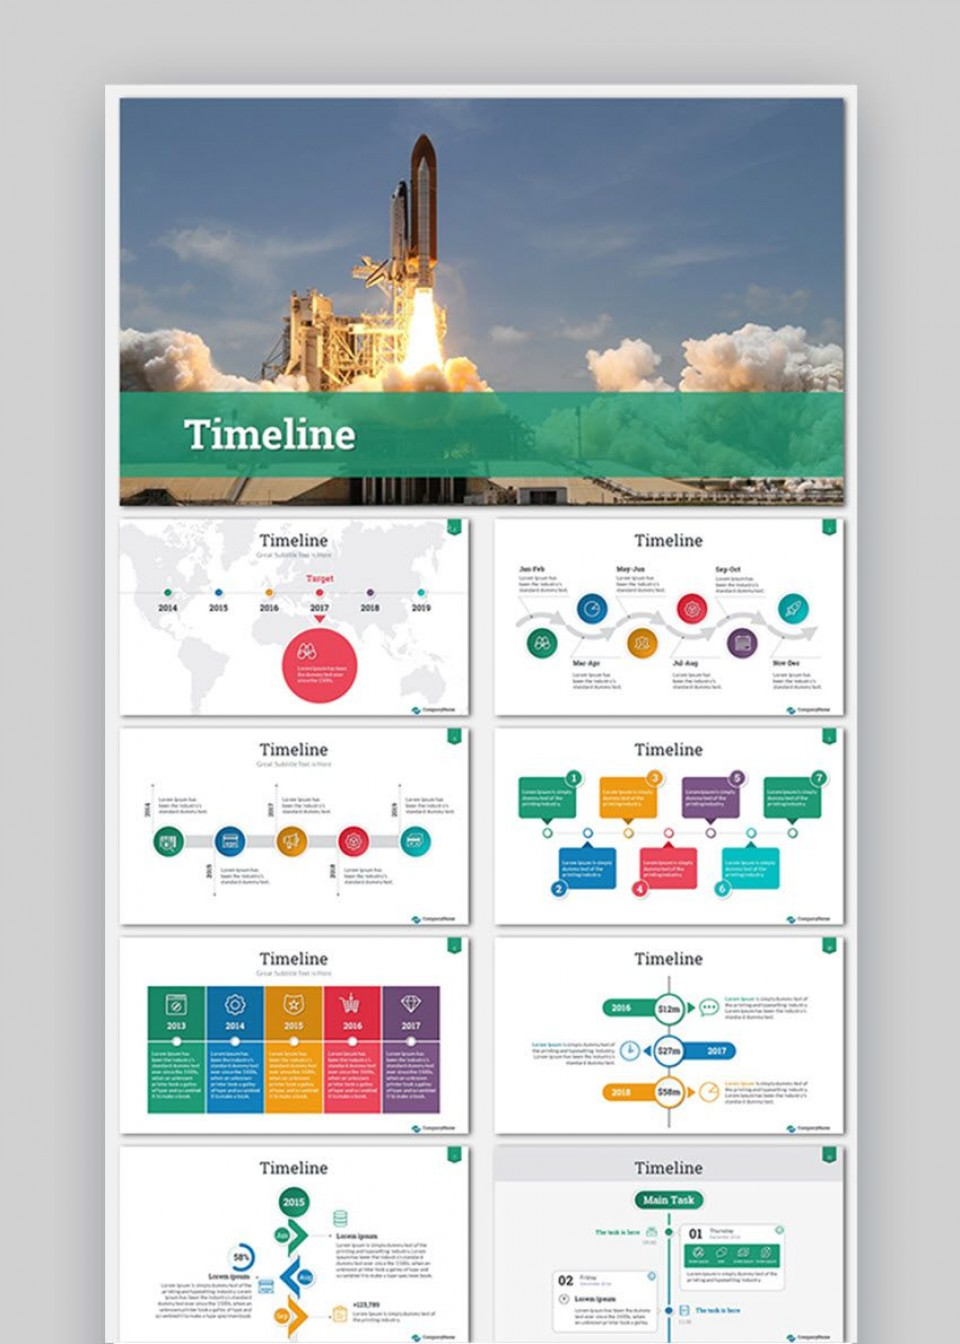 009 Astounding Timeline Template Presentationgo Highest Quality 960